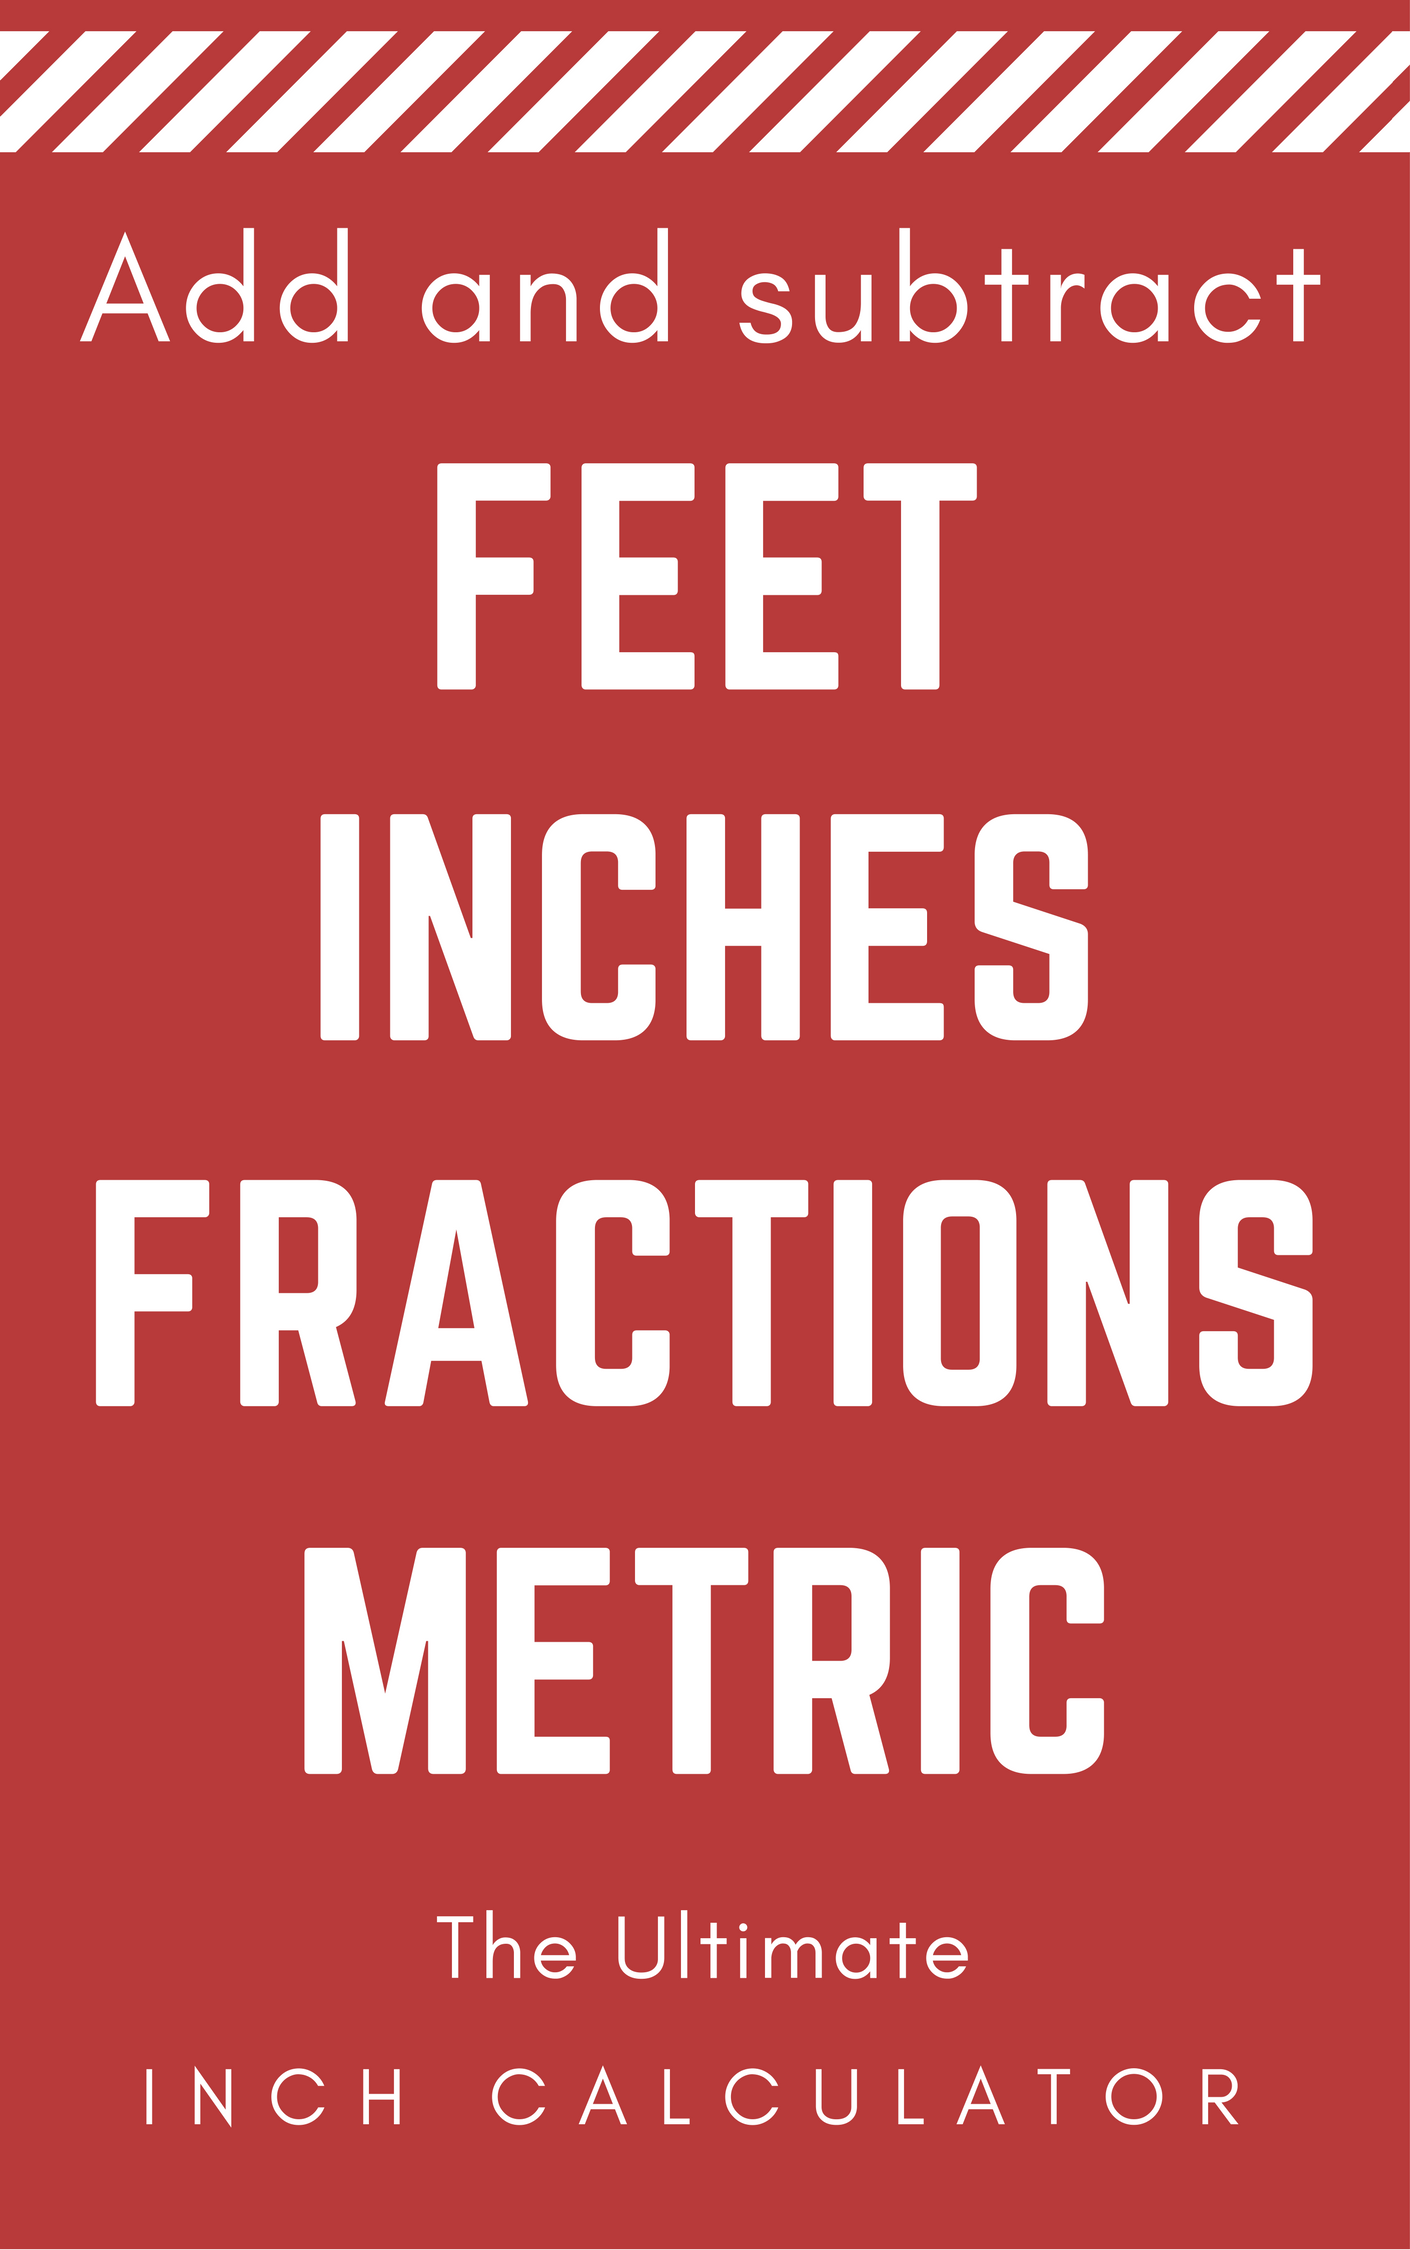 Feet And Inches Calculator